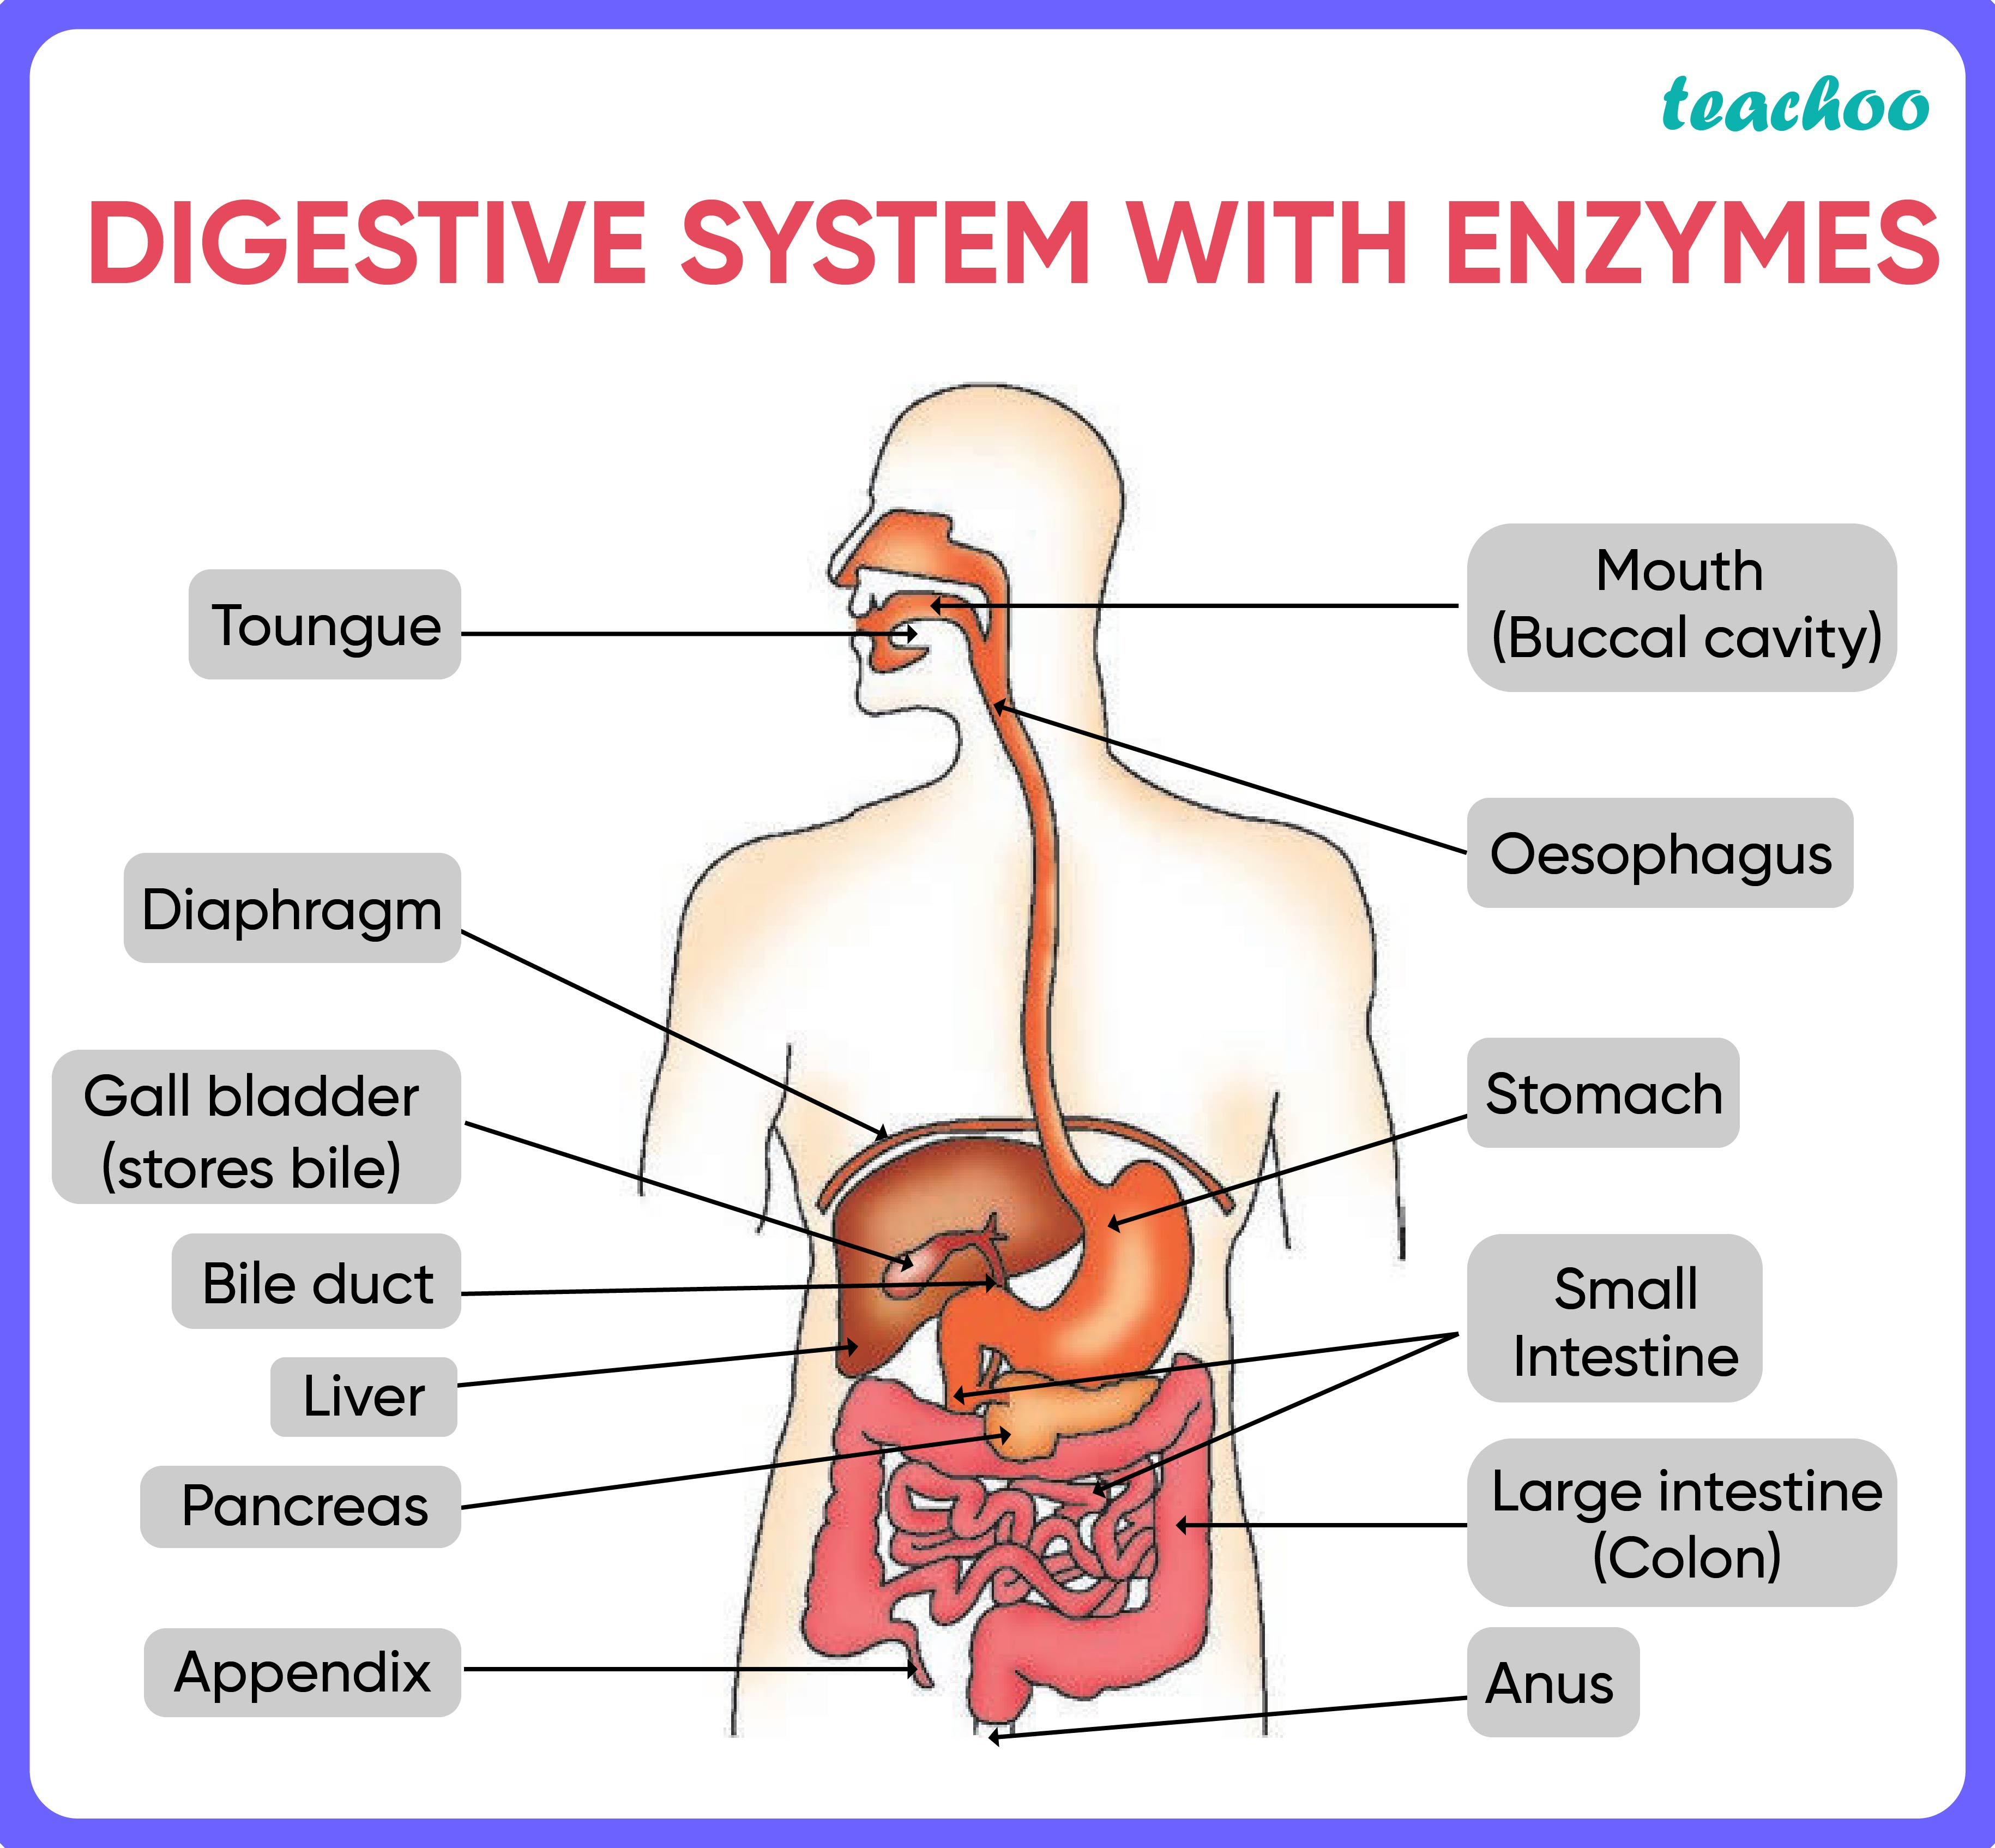 Digestive system with enzymes-01.jpg